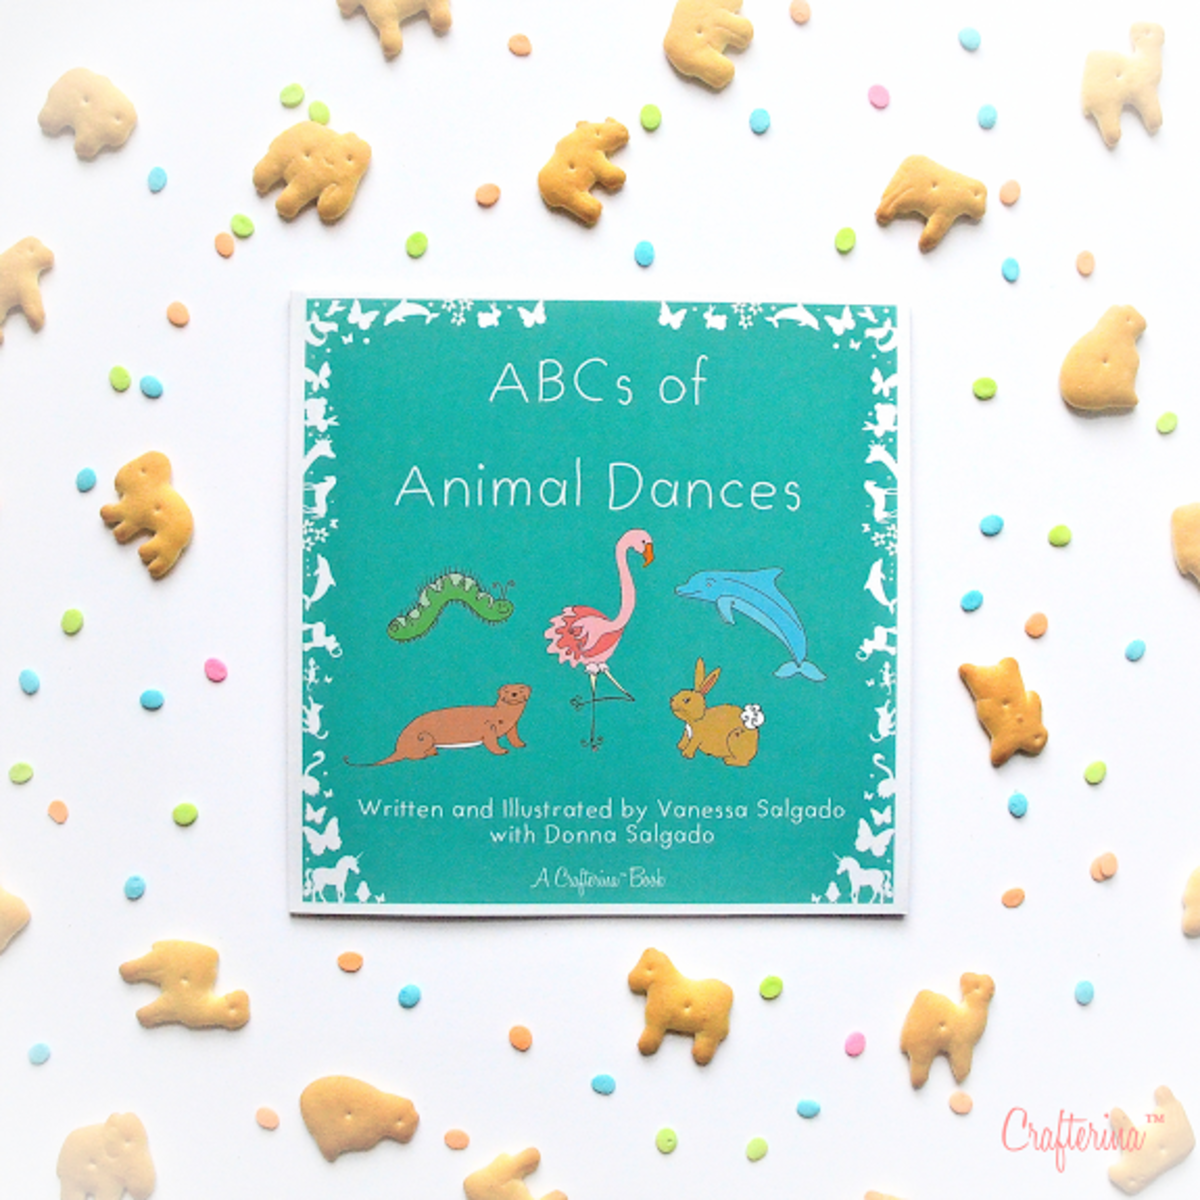 ABCs of Animal Dances Photo for MomTrends